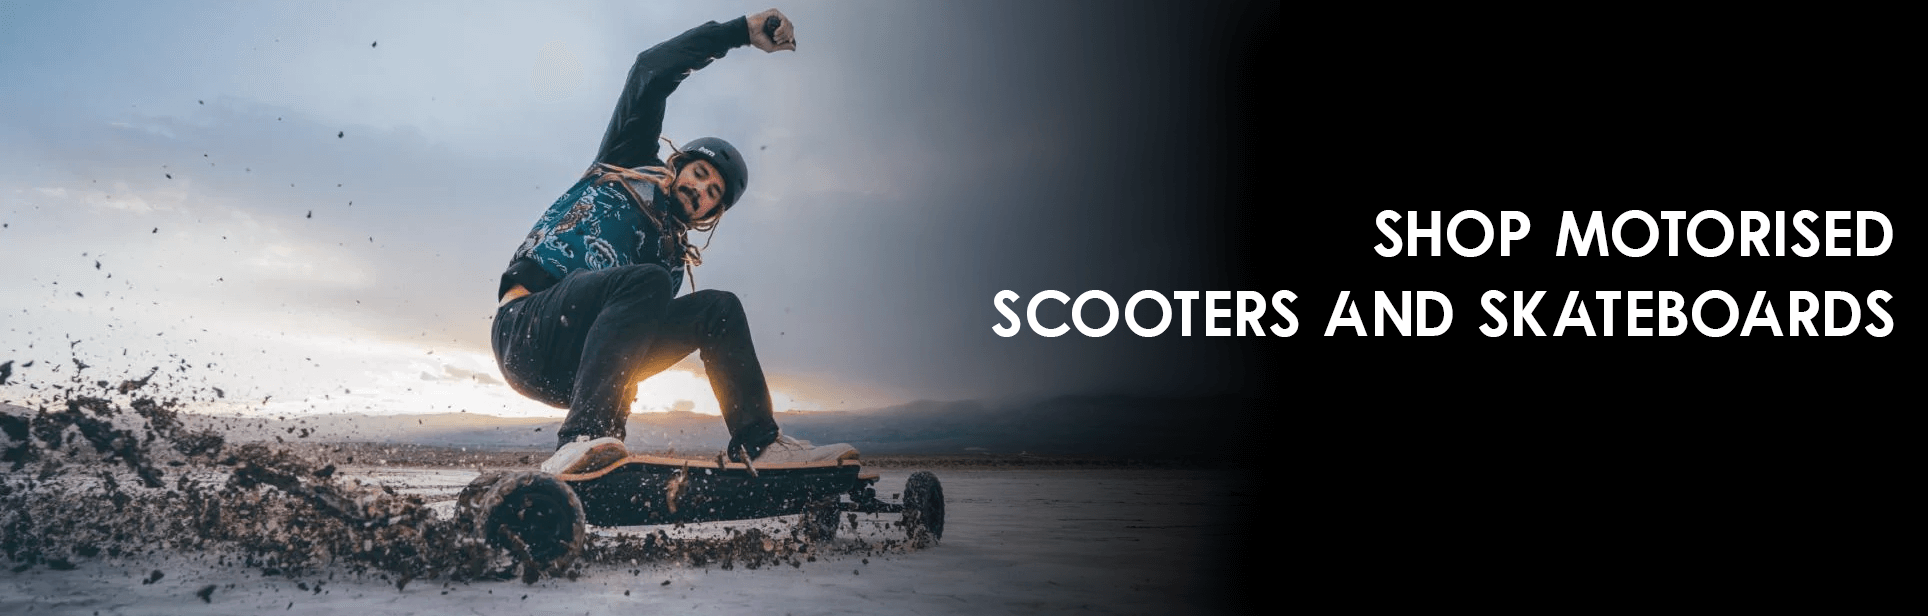 Shop Motorised Scooters and Skateboards at Skate Connection